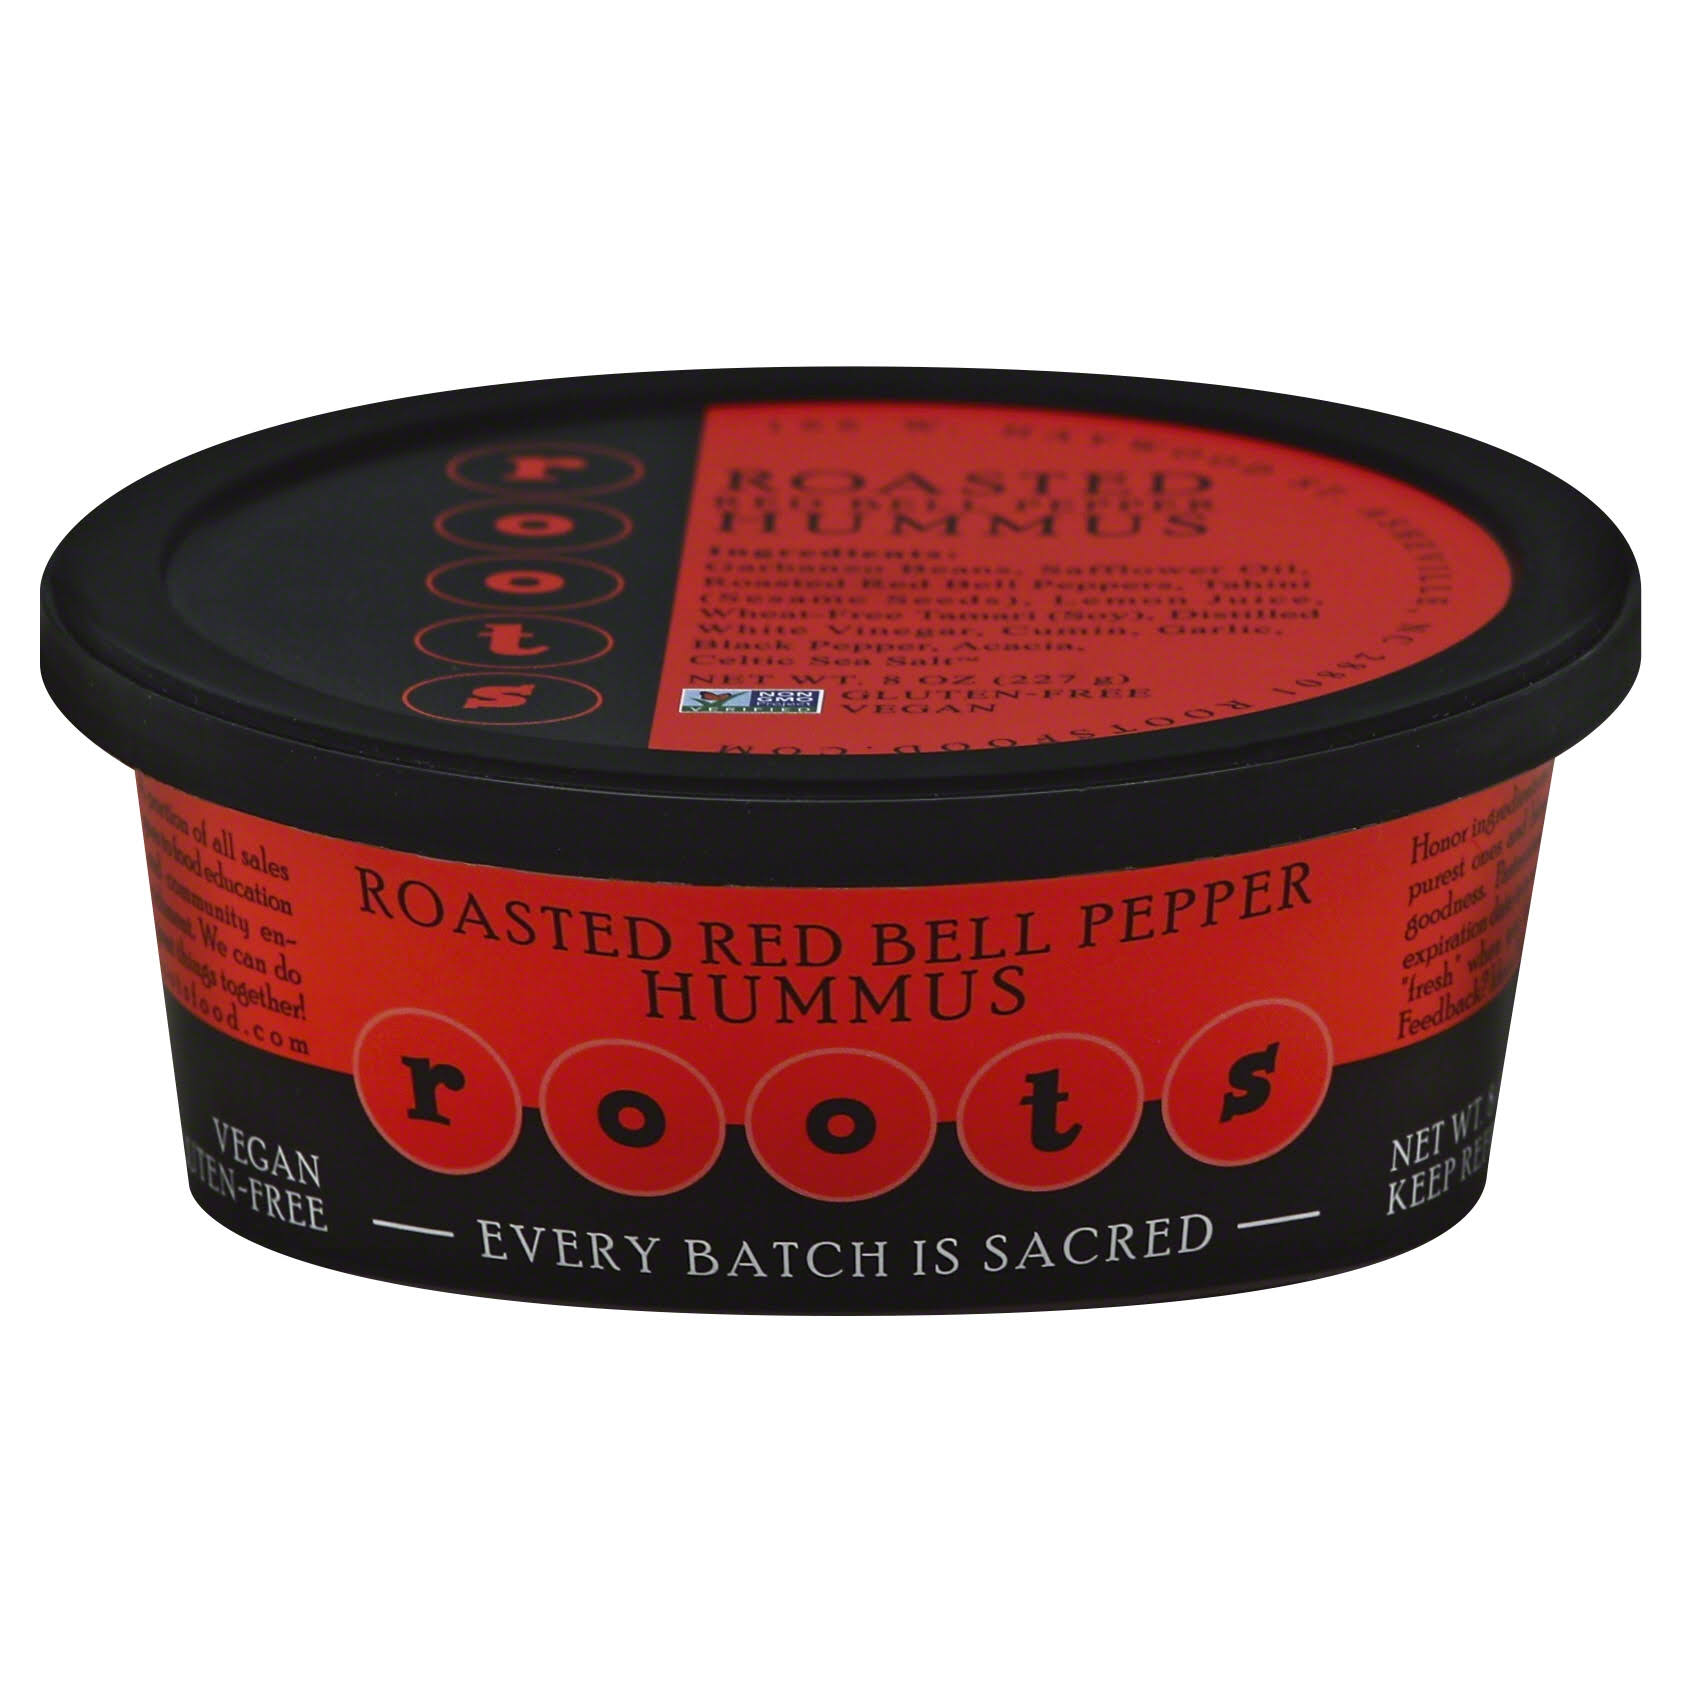 Roots Hummus, Roasted Red Bell Pepper - 8 oz